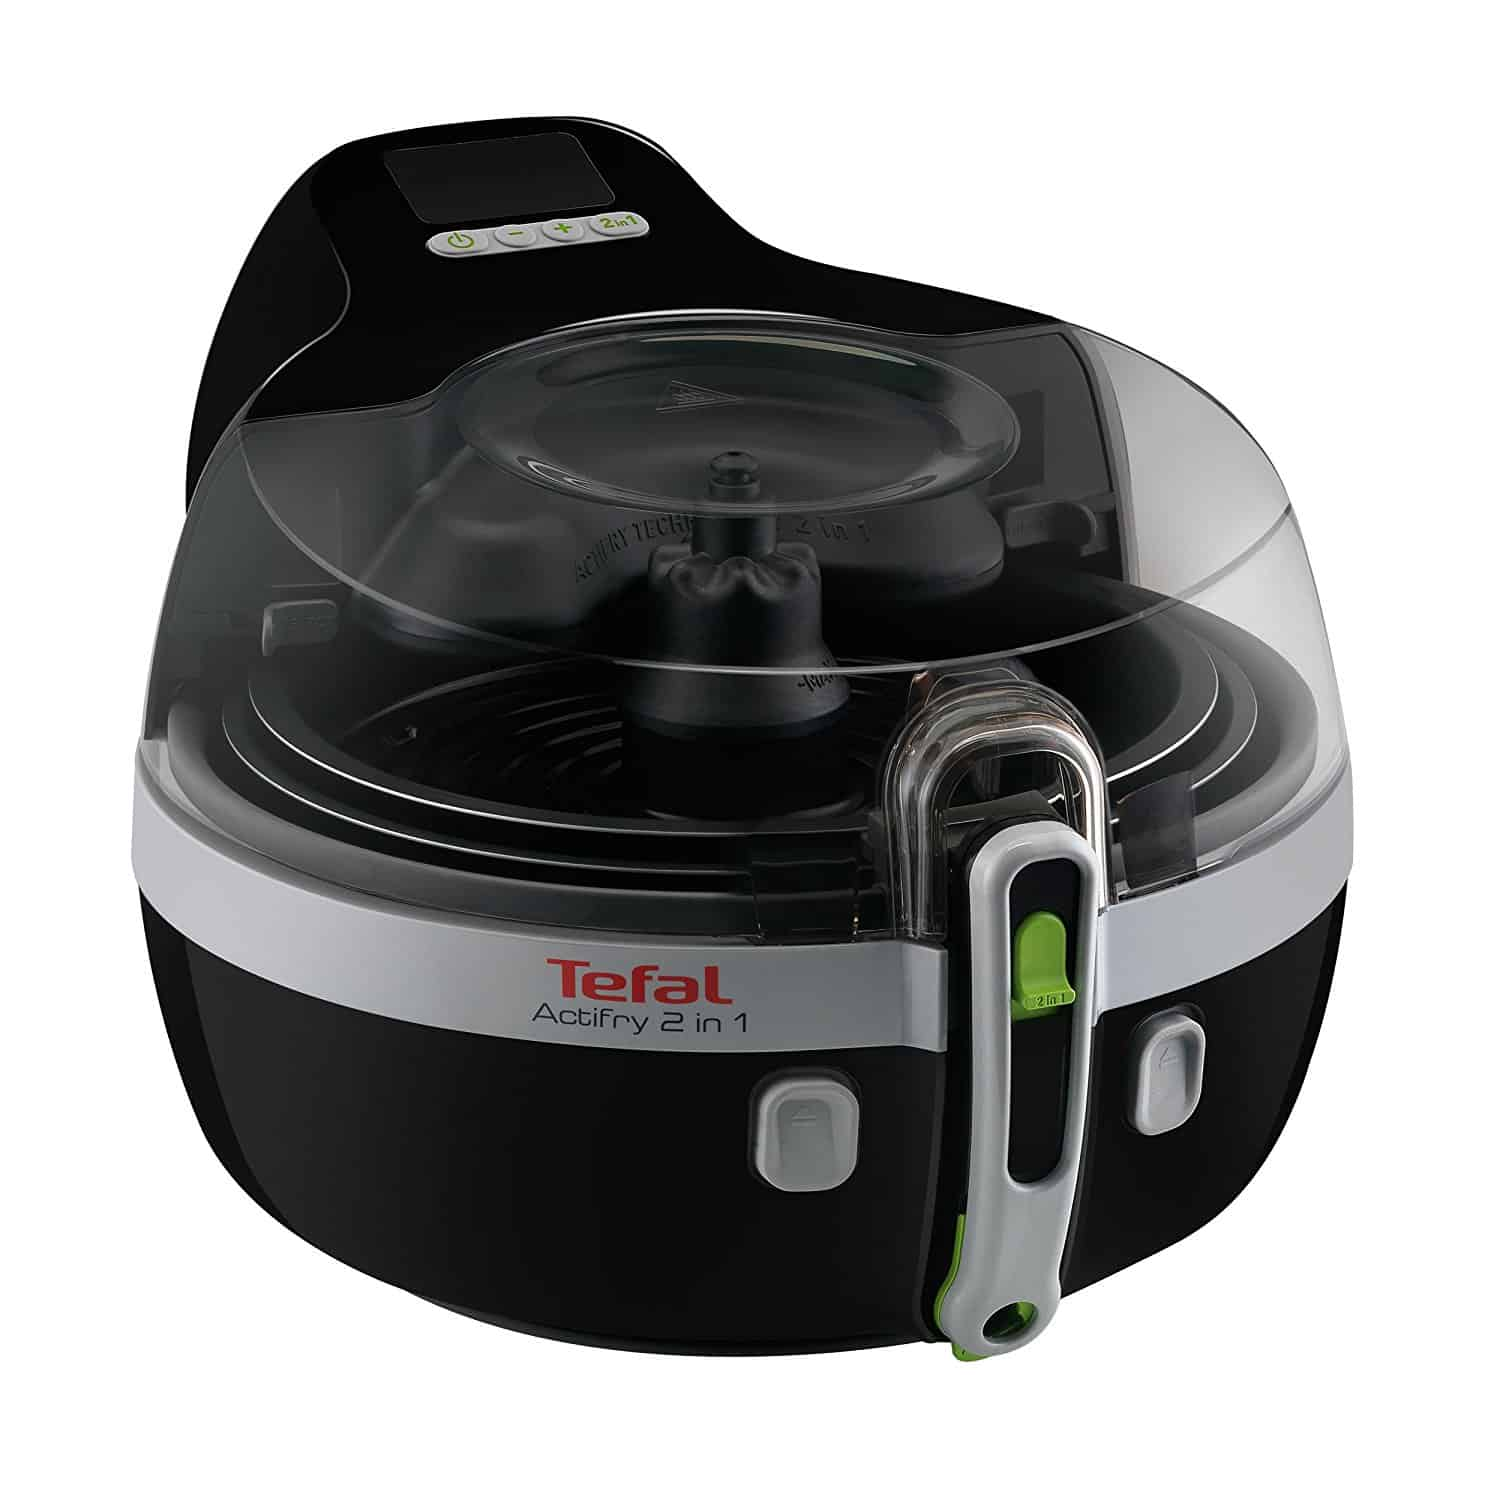 tefal actifry yv960130 2in1 hei luft fritteuse haushalts. Black Bedroom Furniture Sets. Home Design Ideas